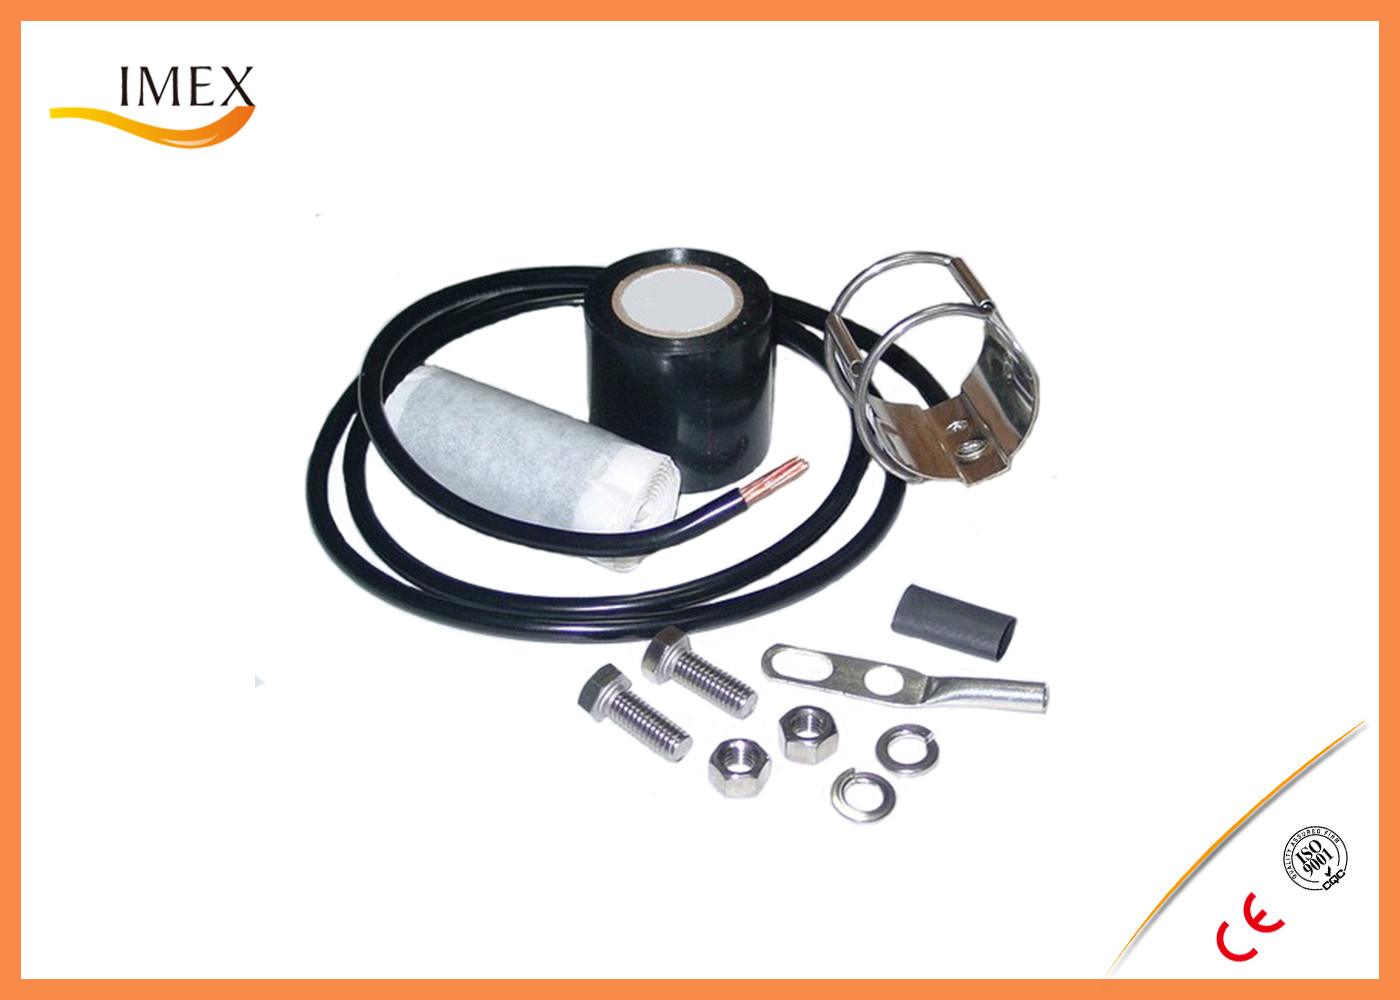 Grounding Kit For 1/2 in coaxial cable for 1/4\'\' 1/2\'\' 1-5/8 ...